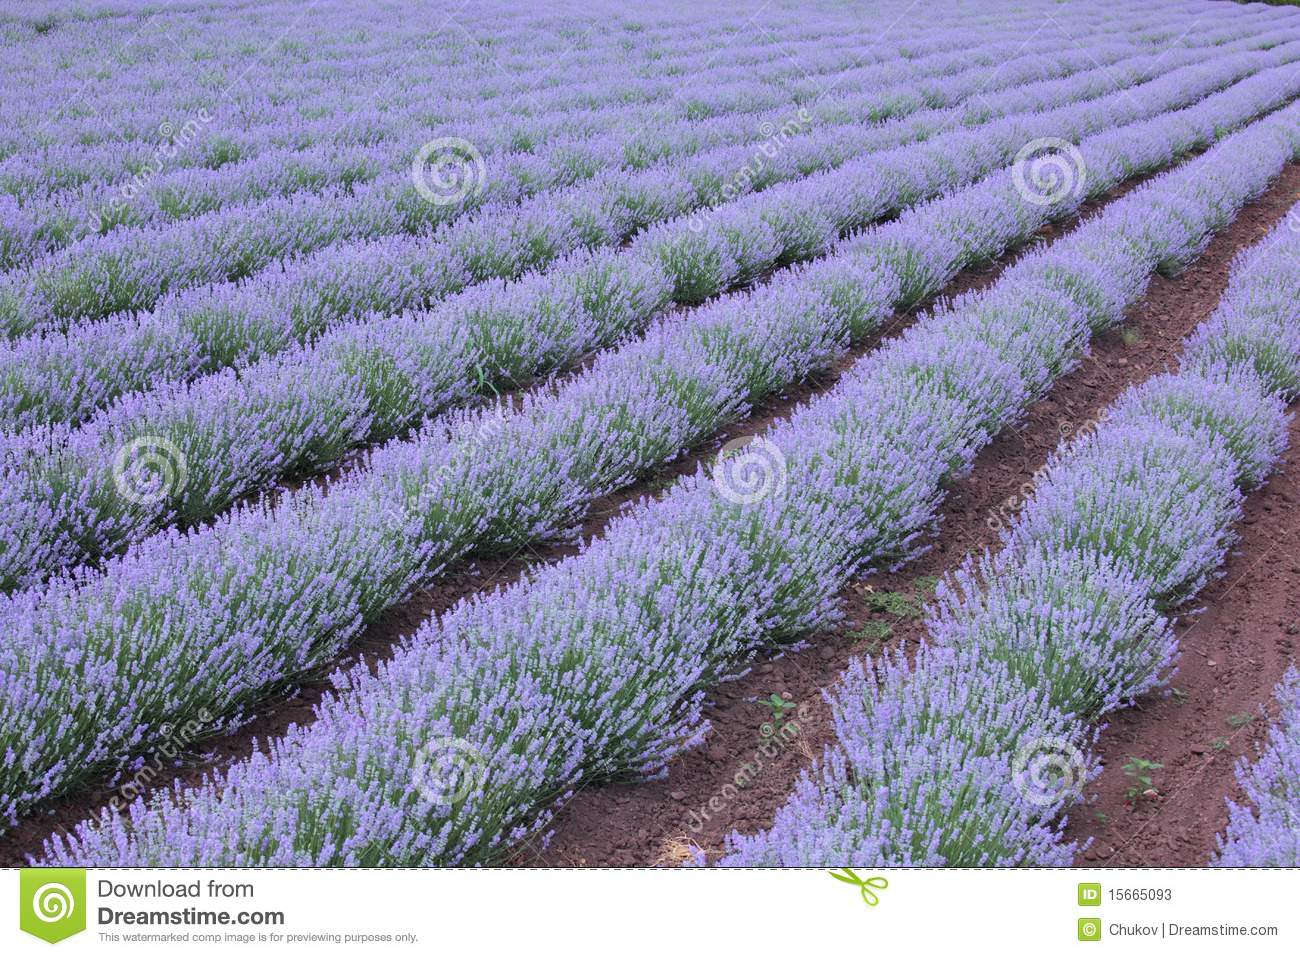 exceptional when to plant lavender Part - 2: exceptional when to plant lavender nice ideas